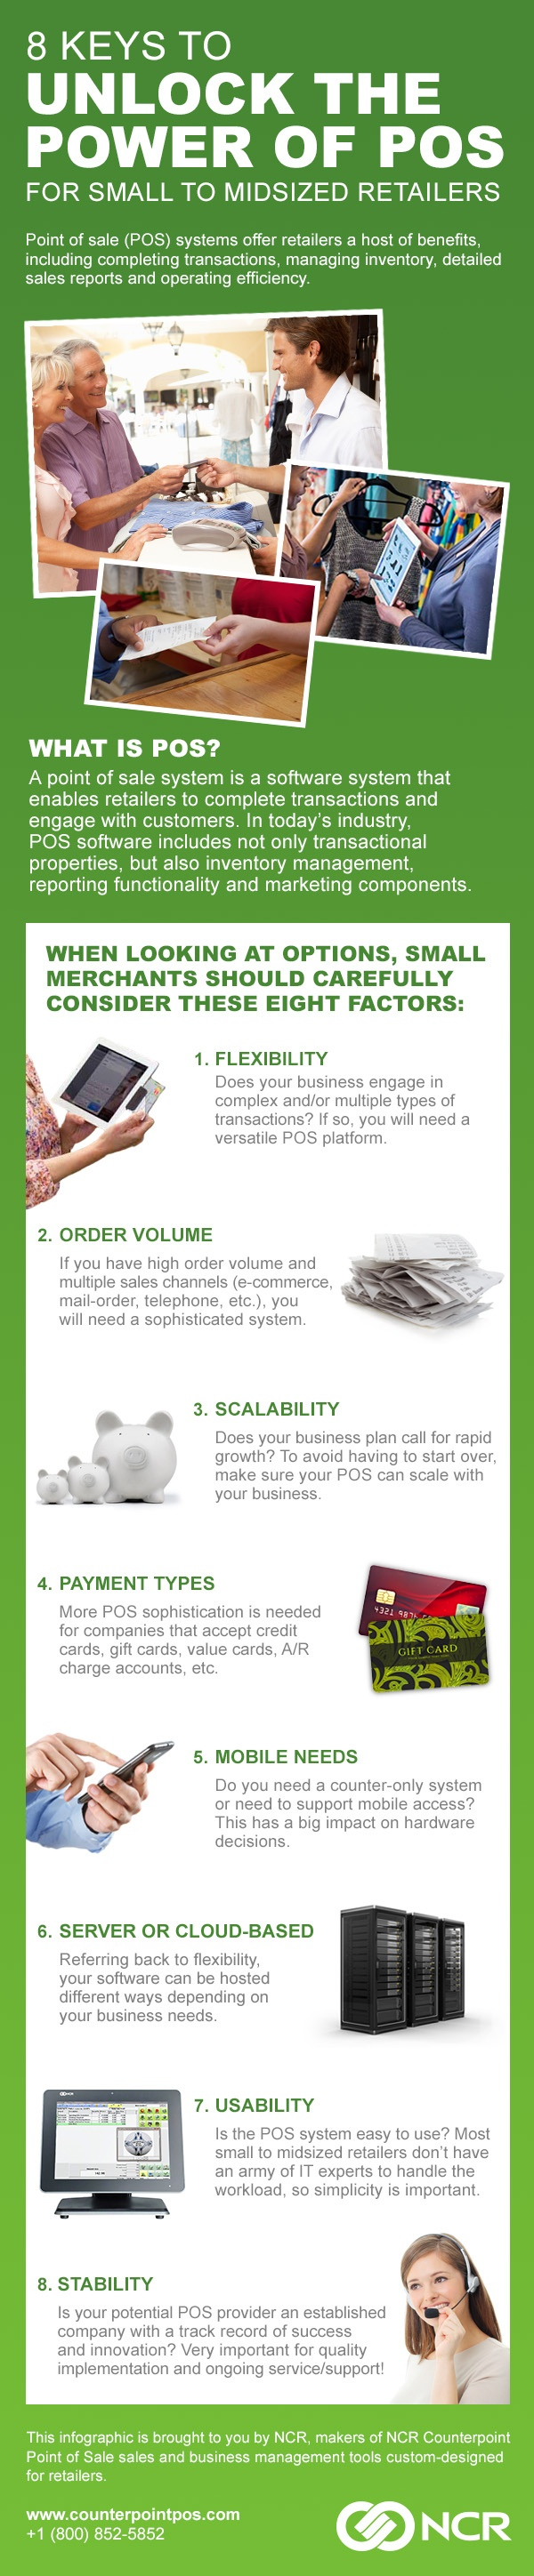 8 Keys To Unlock The Power of Point Of Sale - Image 1